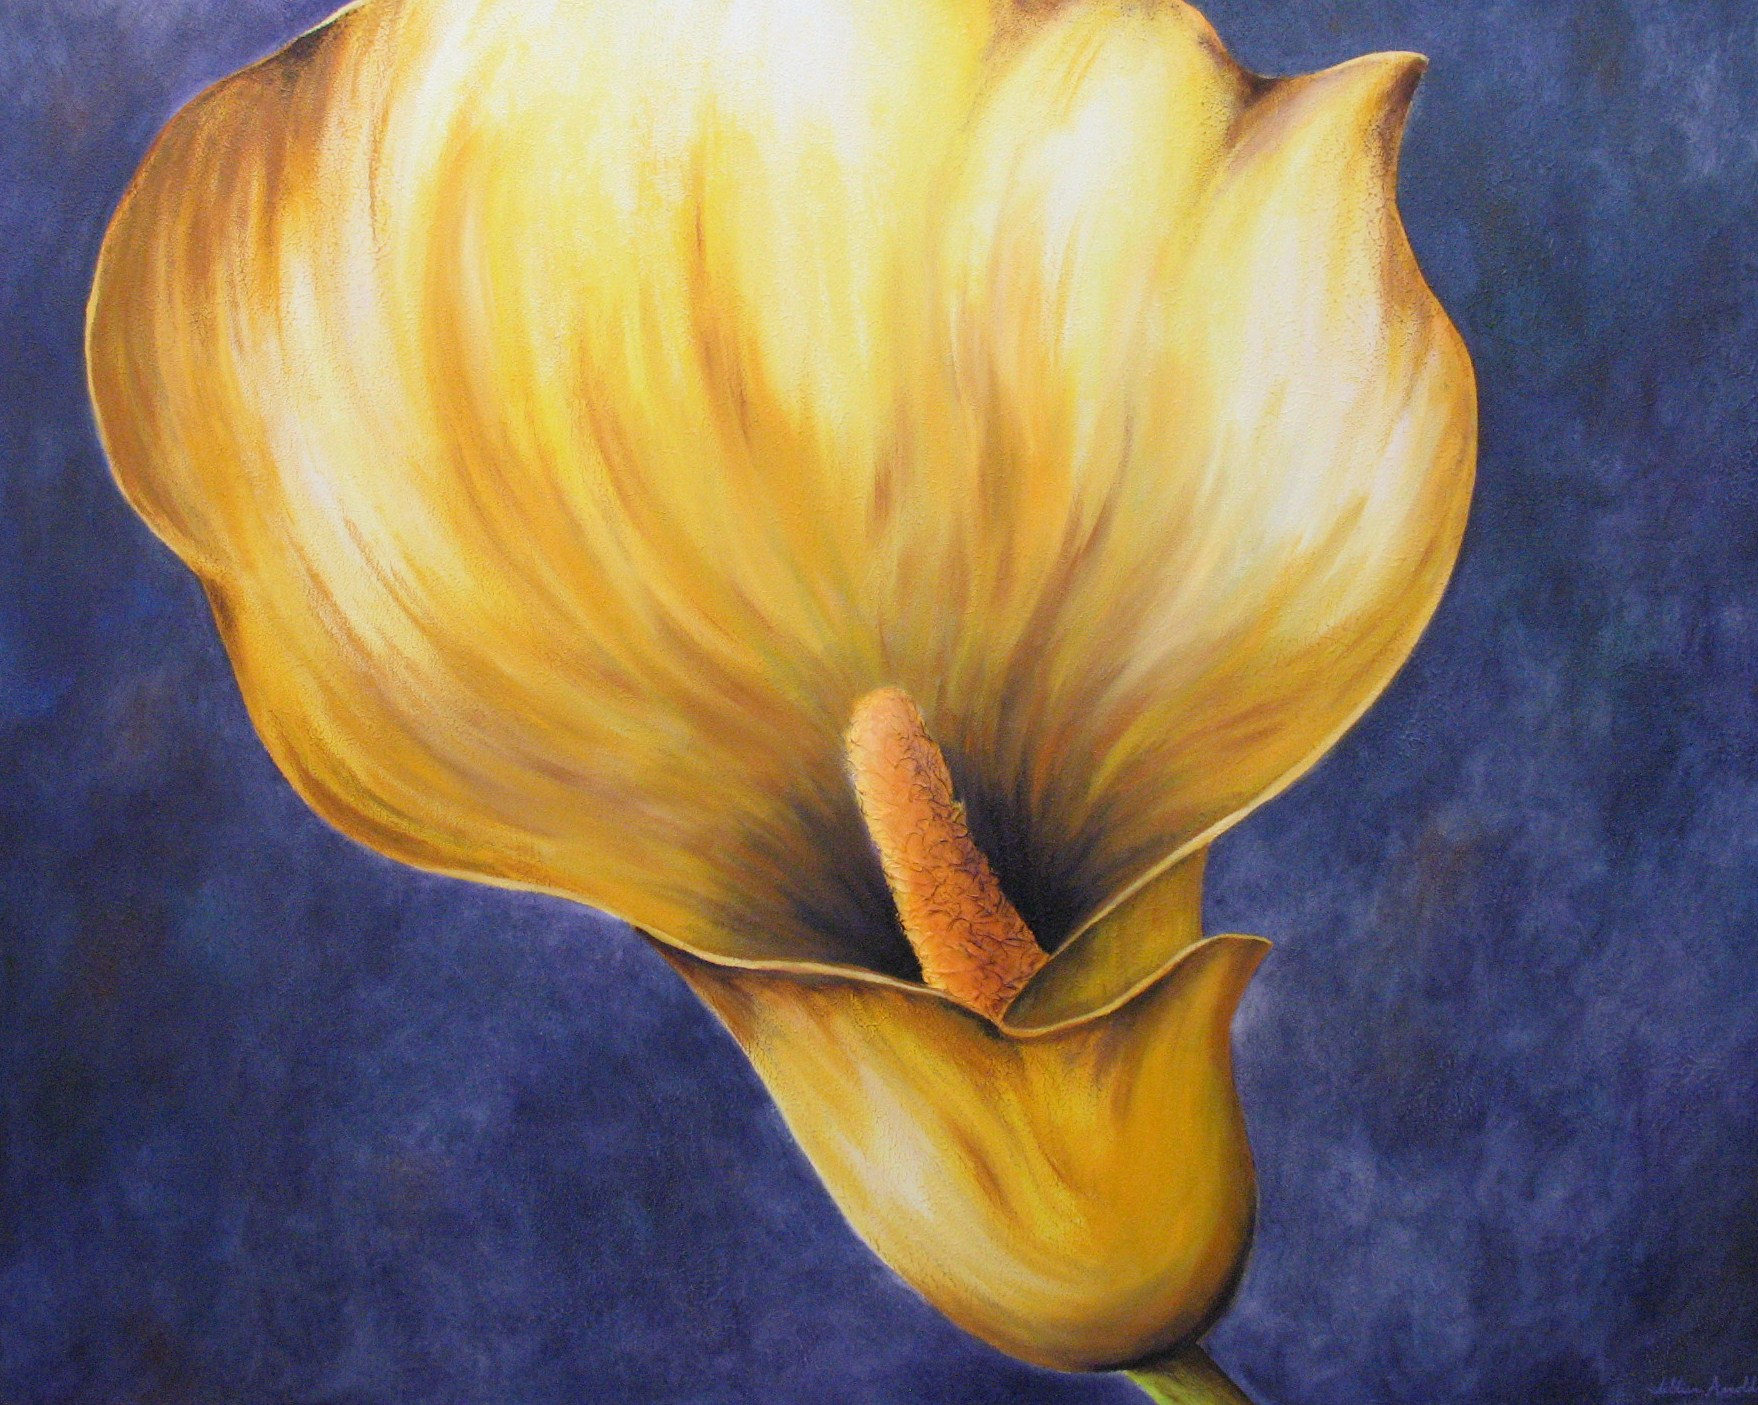 Lily. oil on canvas, 48 x 60 inches. 2006